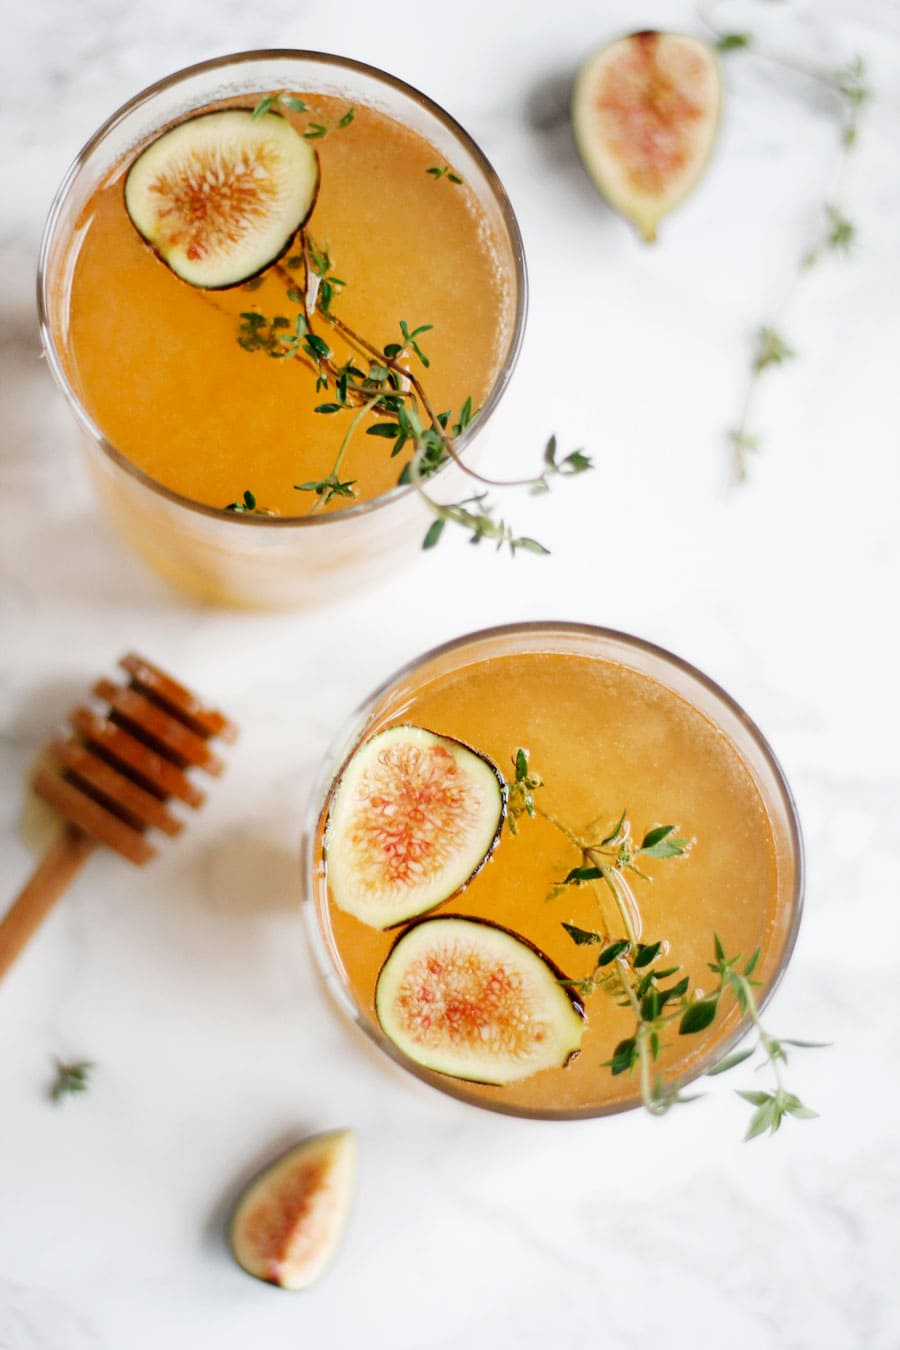 SPARKLING FIG THYME COCKTAIL